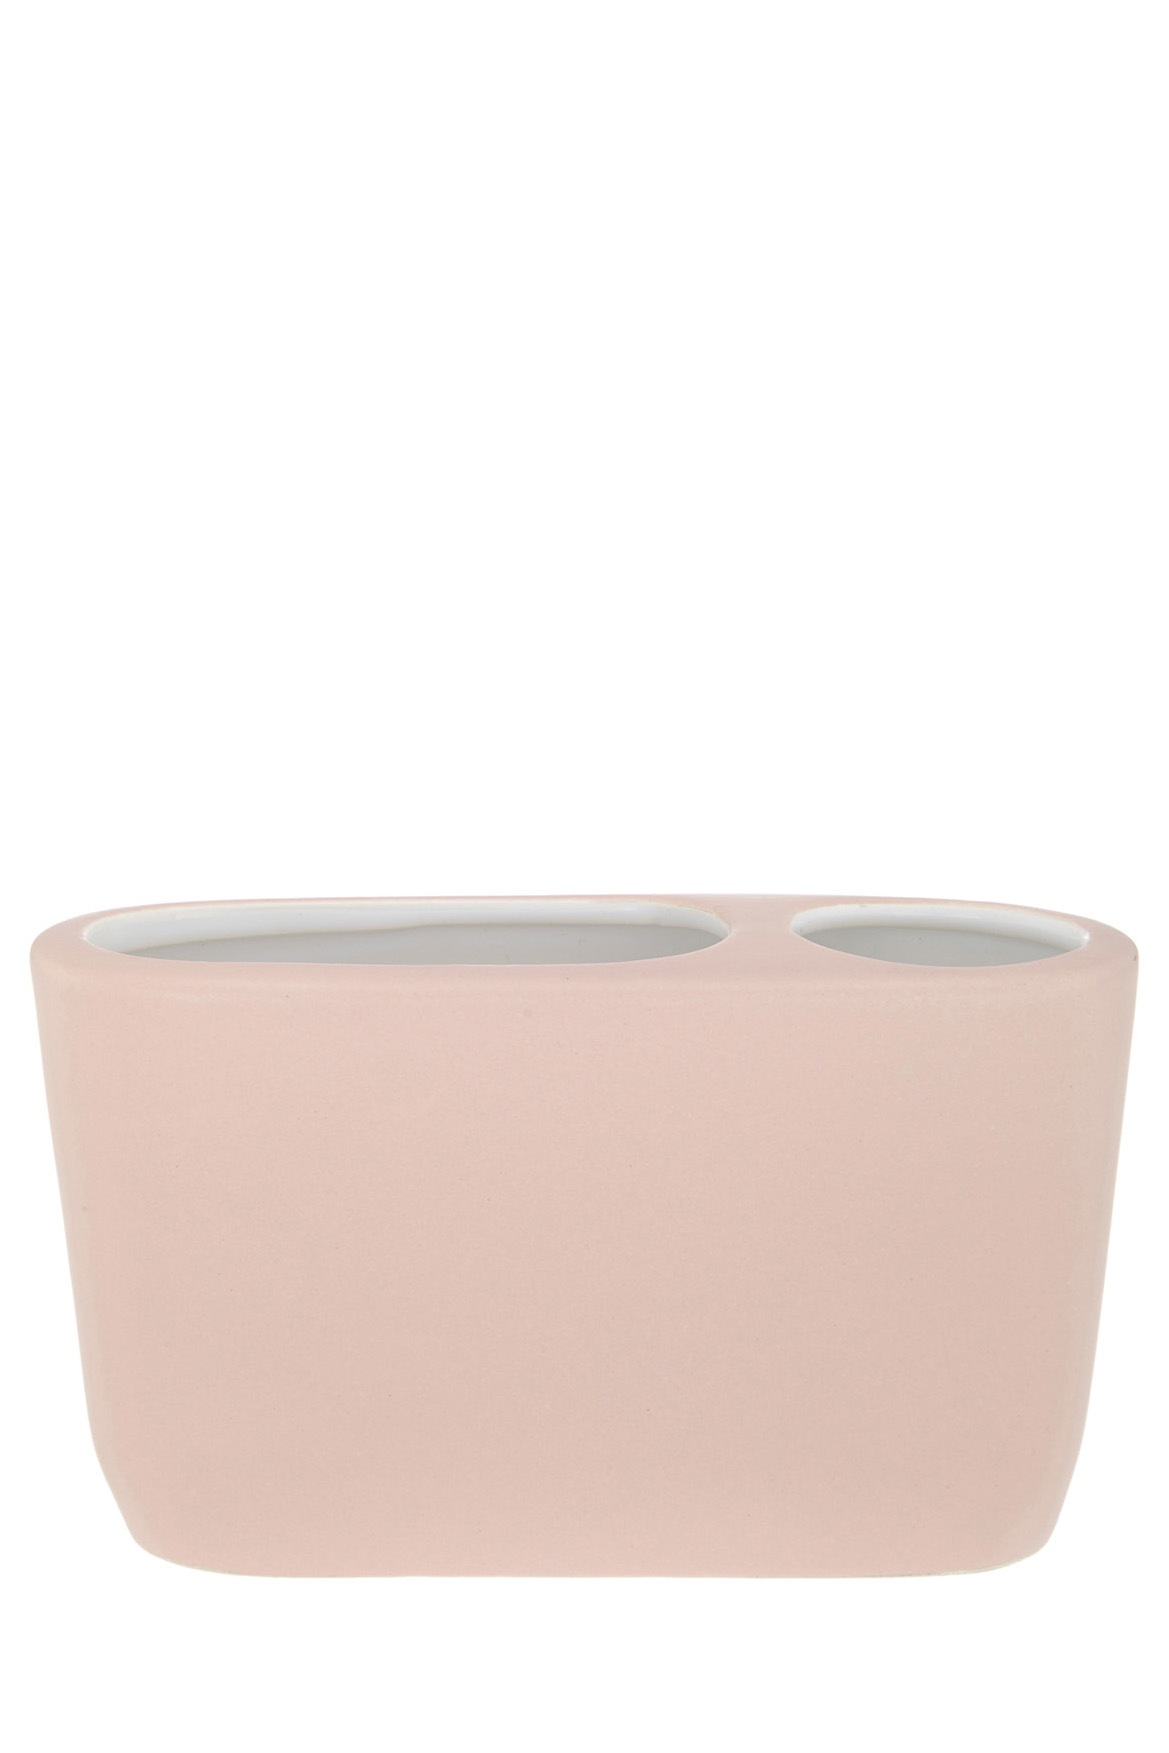 John Lewis | Lunda Plaster Ceramic Bathroom Accessories in Pink ...